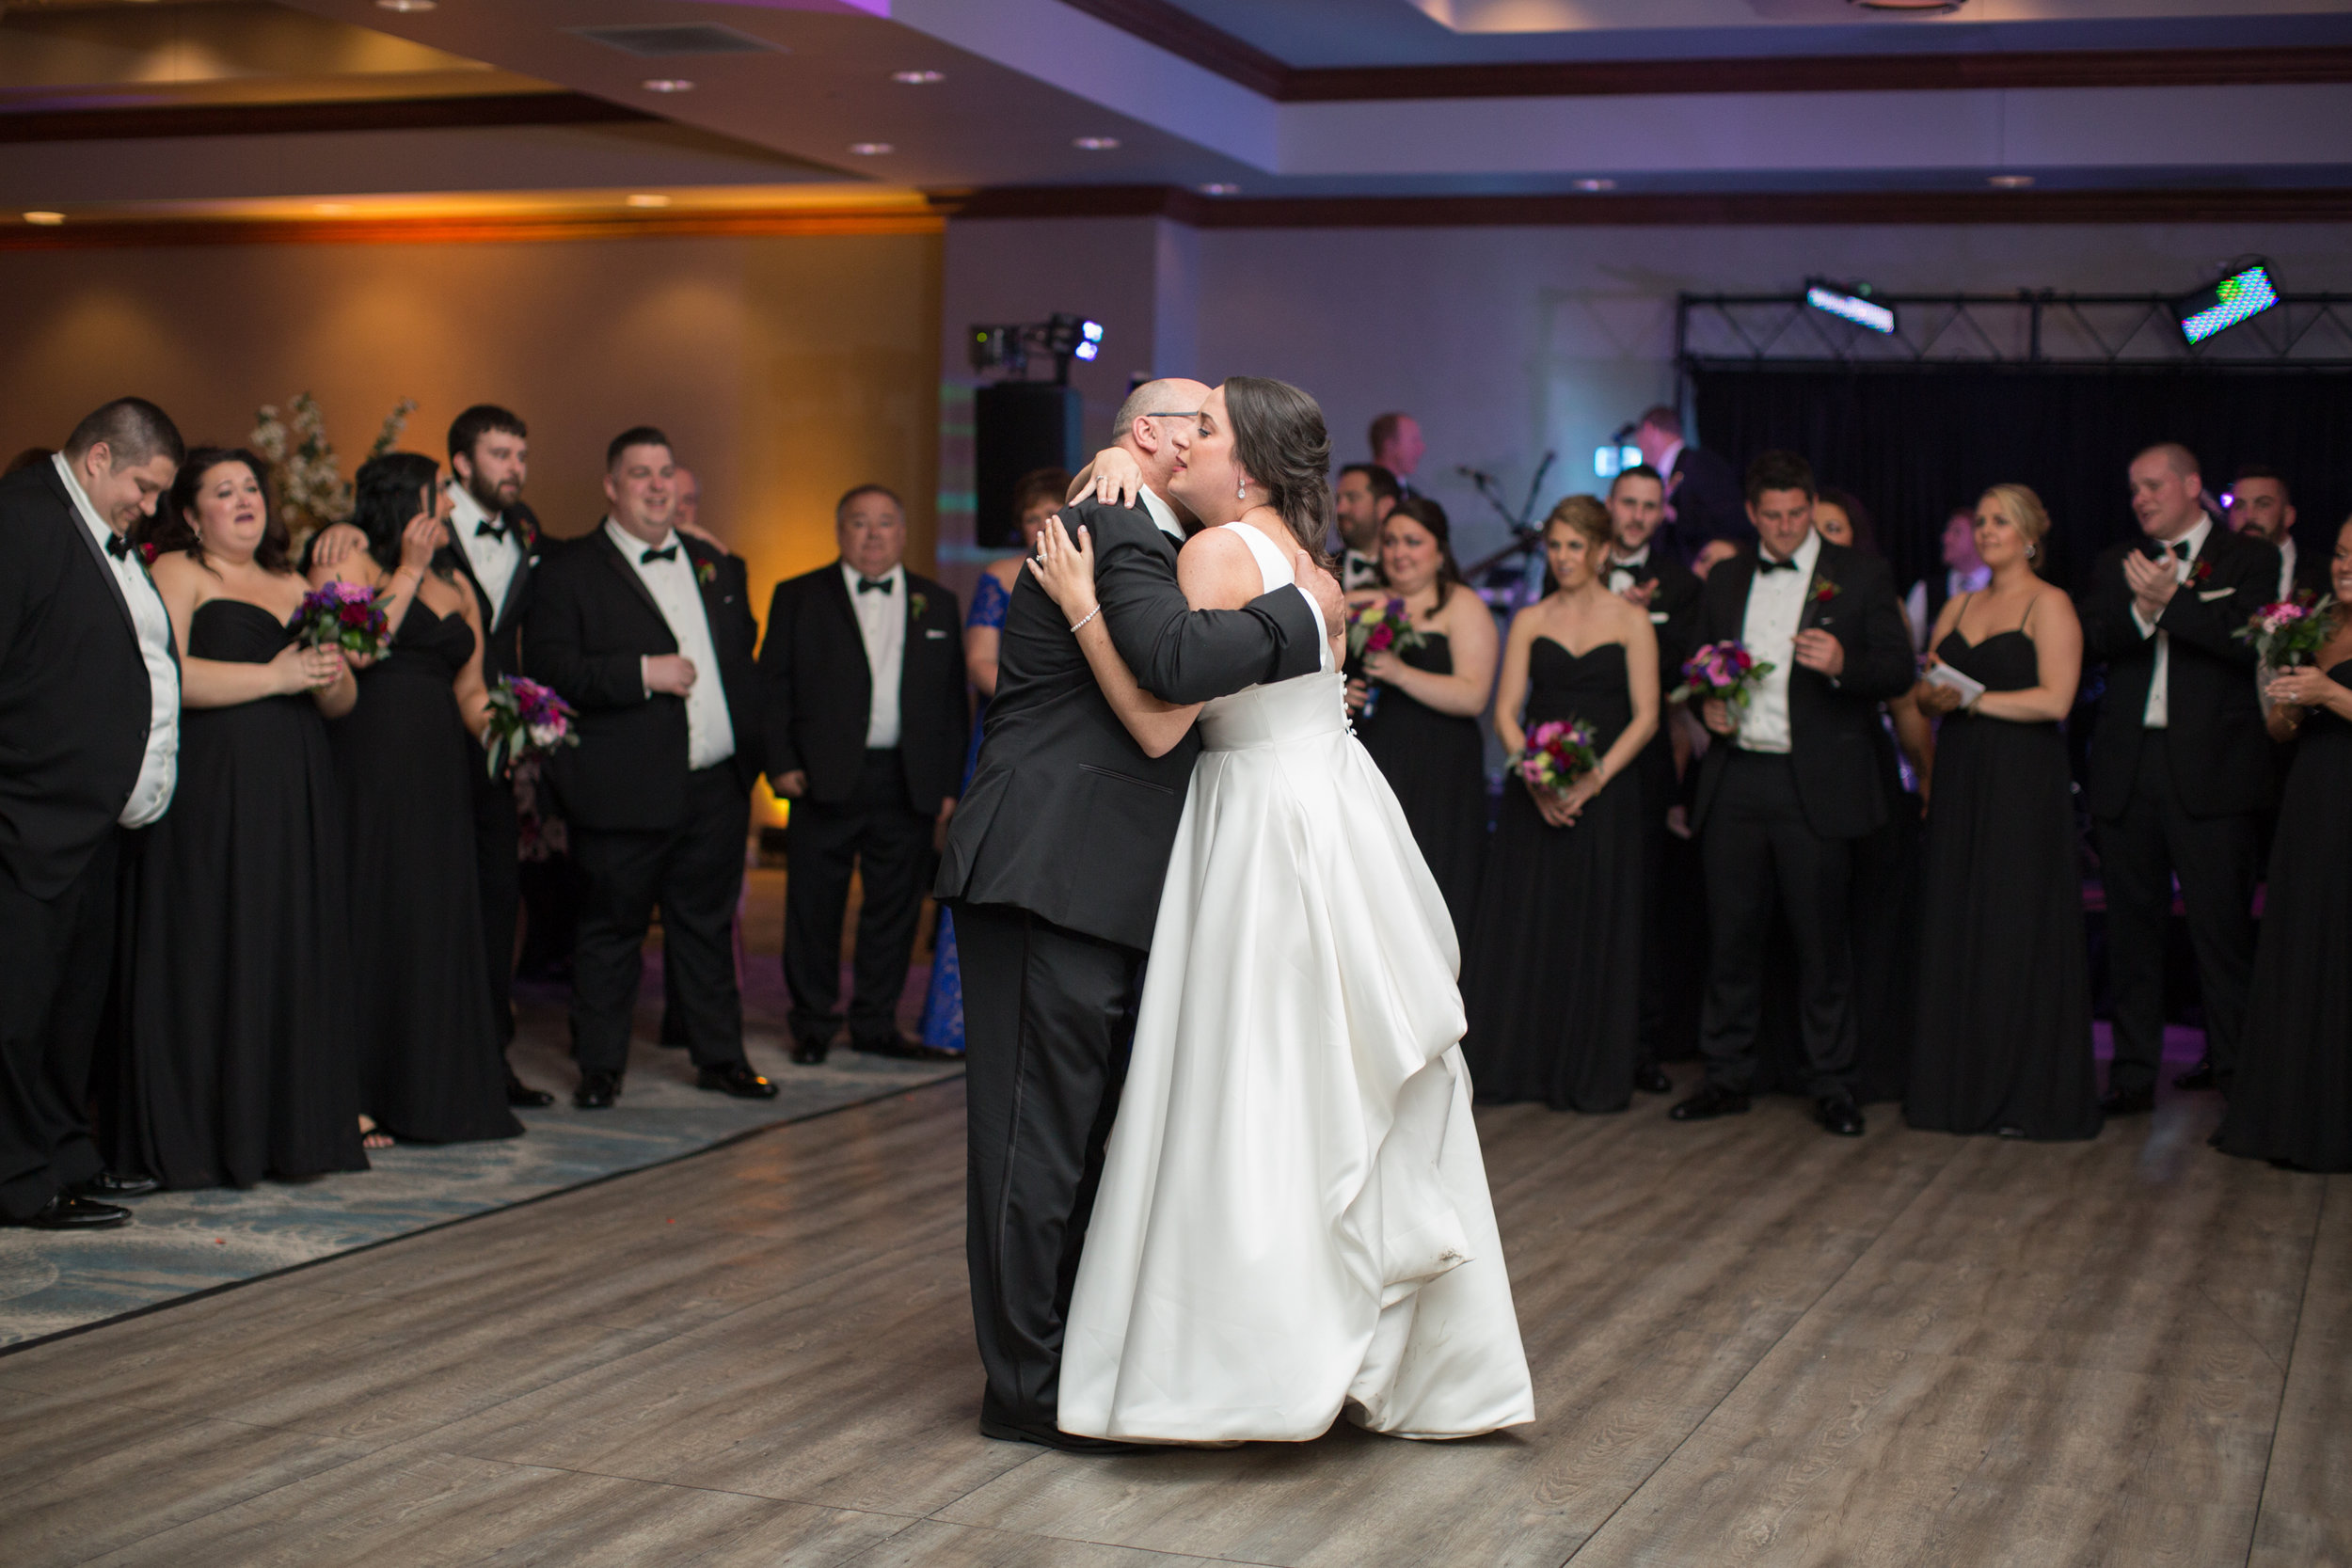 Hilton Scranton PA Wedding Photos_JDP-124.jpg